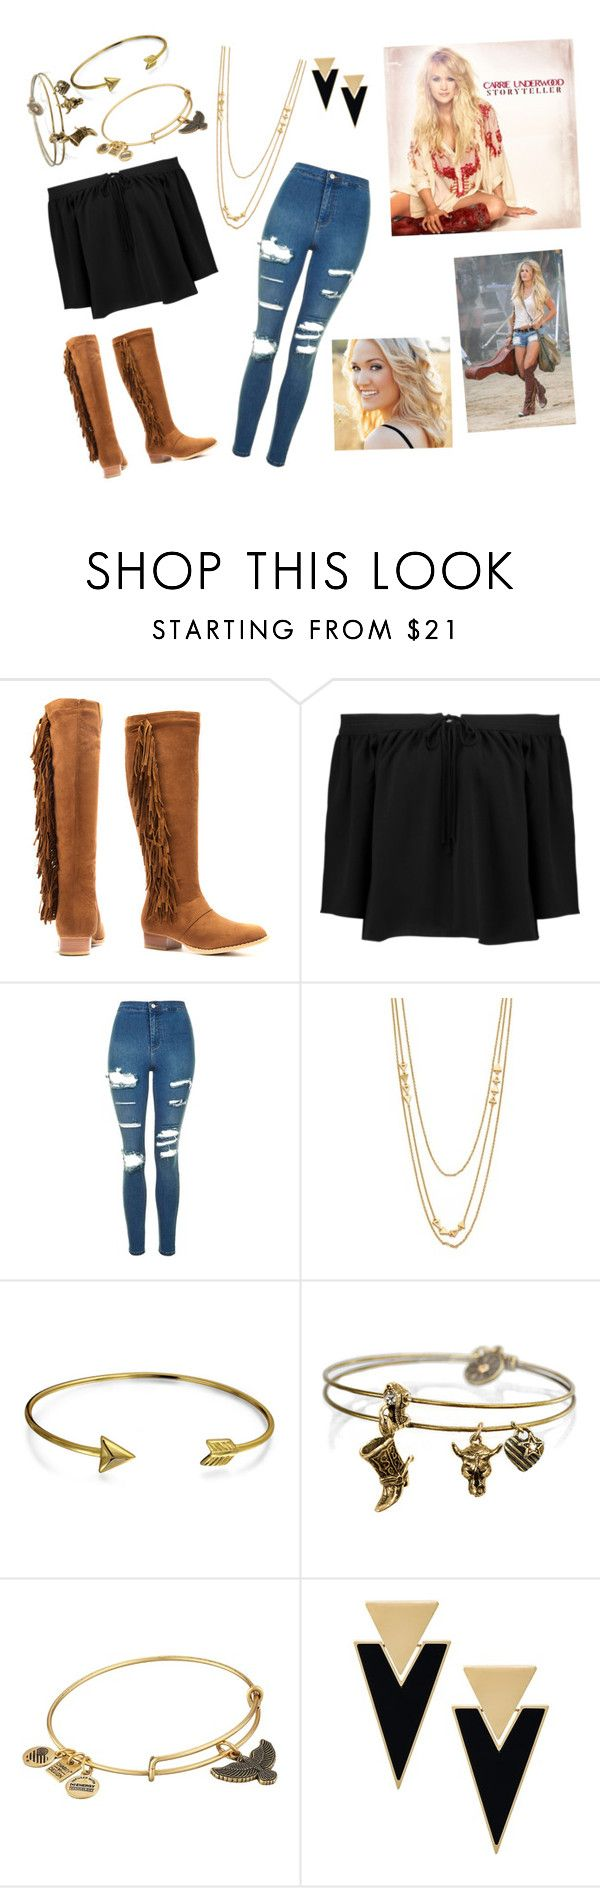 """""""Carrie Underwood Concert tonight!"""" by archeryfashionfab on Polyvore featuring Elizabeth and James, Topshop, Gorjana, Bling Jewelry, Sweet Romance, Alex and Ani and Yves Saint Laurent"""